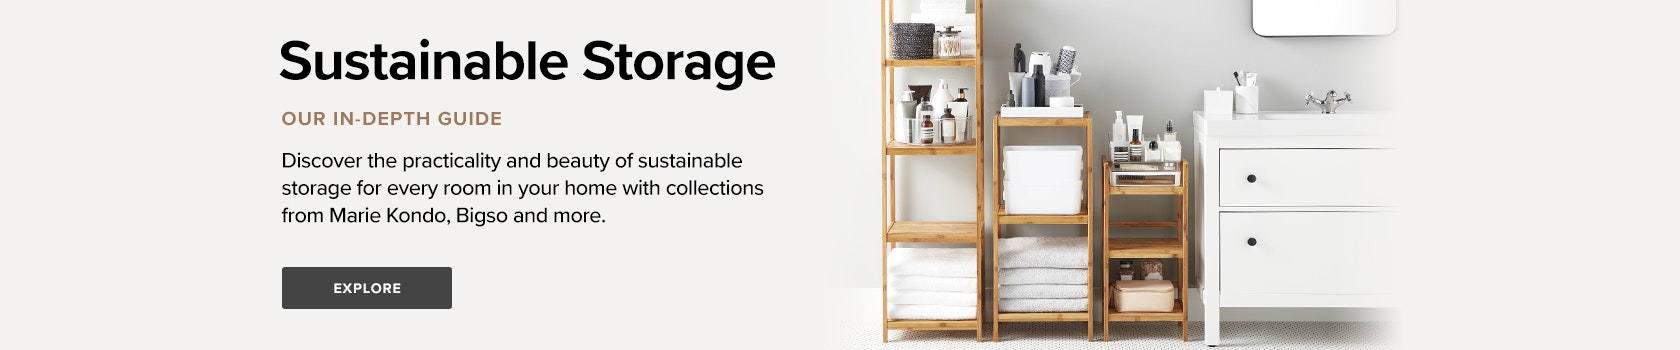 Sustainable Storage